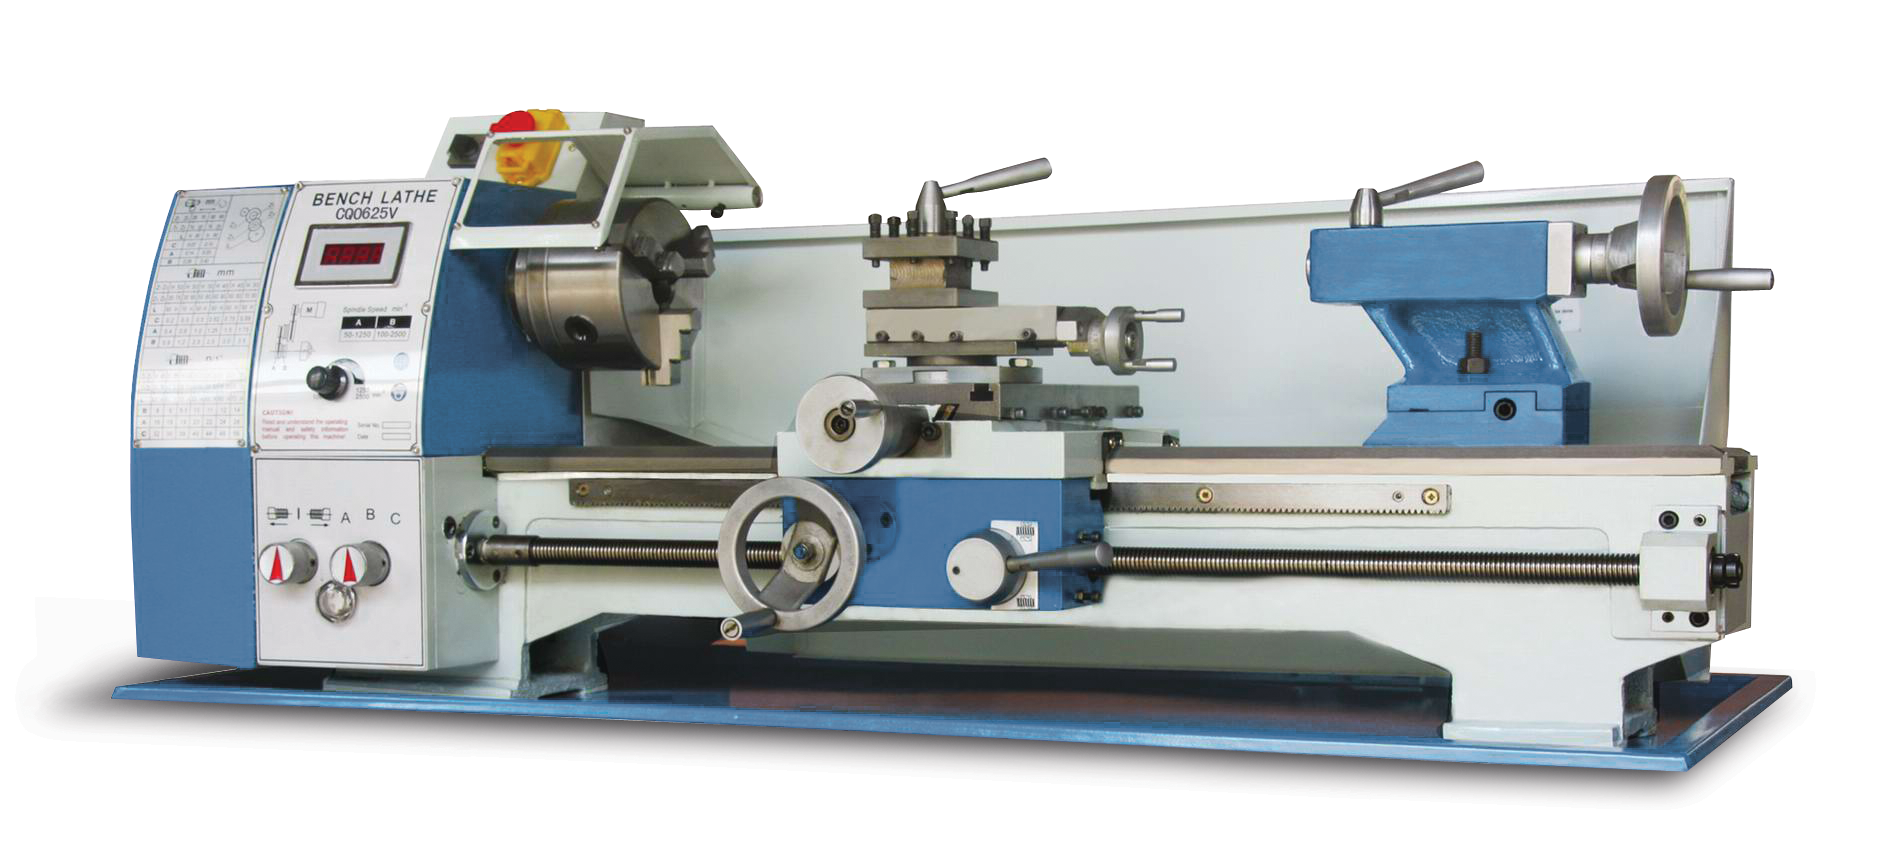 Benchtop Lathe Pl 1022vs Table Top Lathe Baileigh